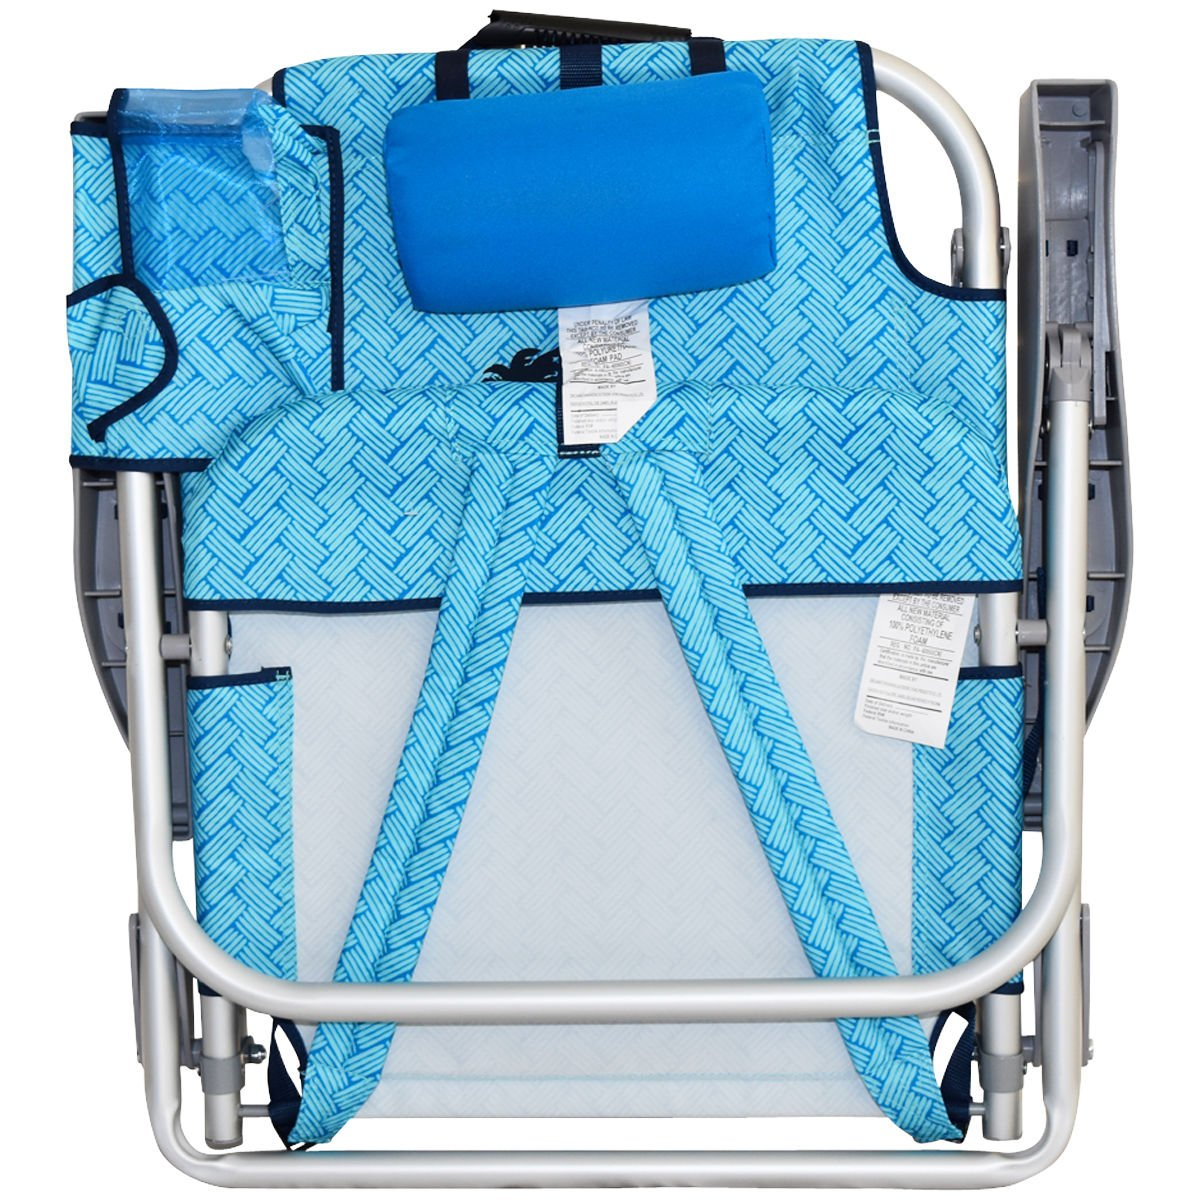 2 Tommy Bahama Backpack Beach Chairs/ Light Blue + 1 Medium Tote Bag by Tommy Bahama (Image #5)